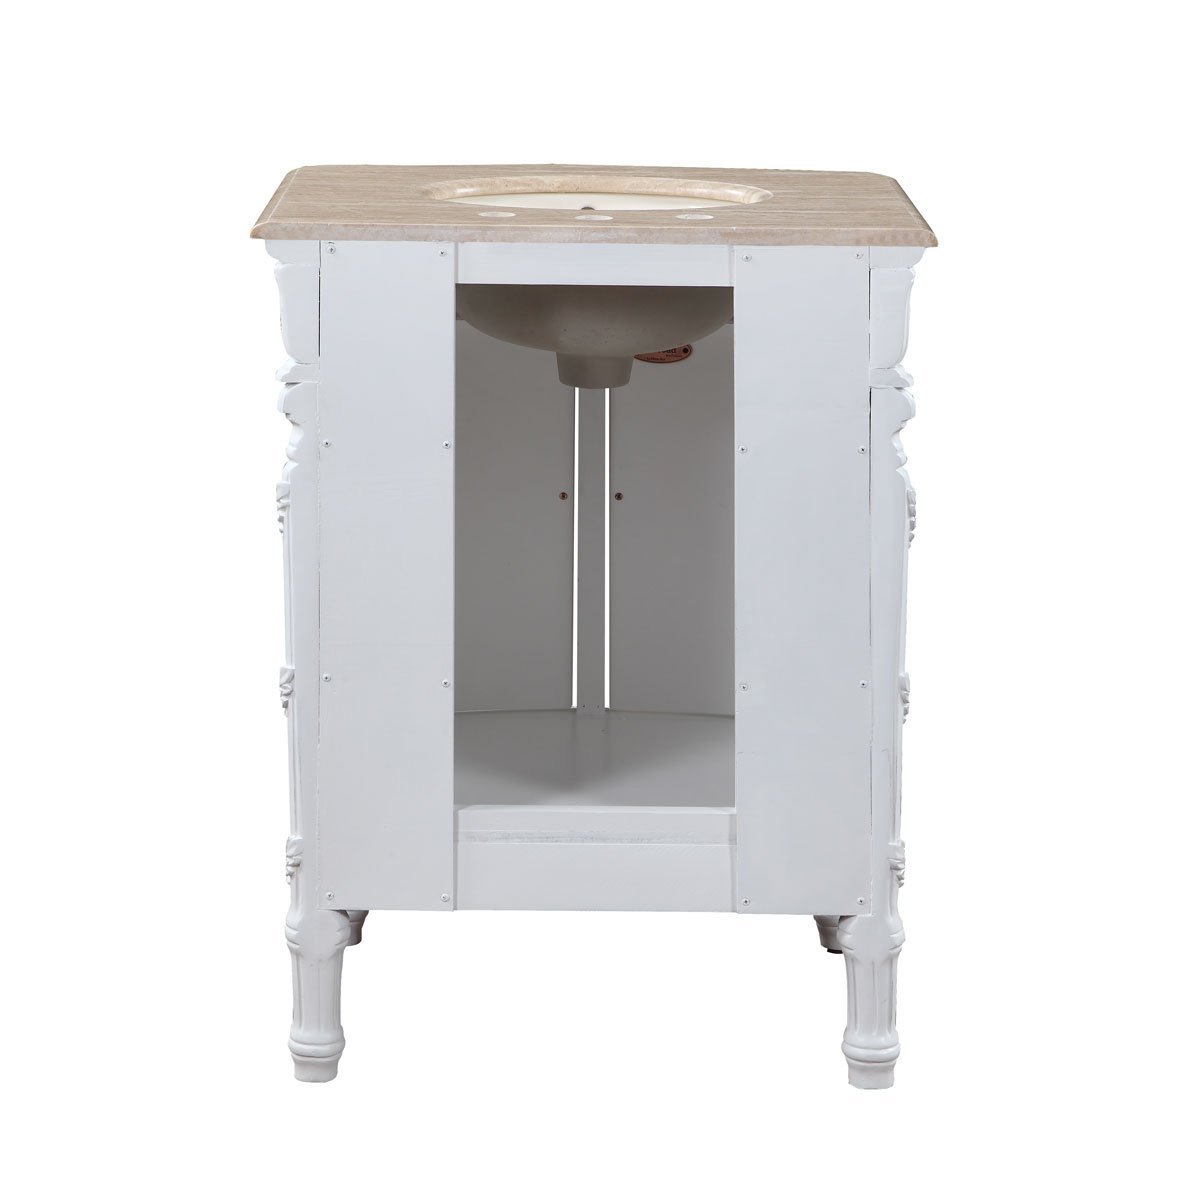 Silkroad Exclusive Travertine Top Single Sink Bathroom Vanity with White Oak Finish Cabinet, 26-Inch 4